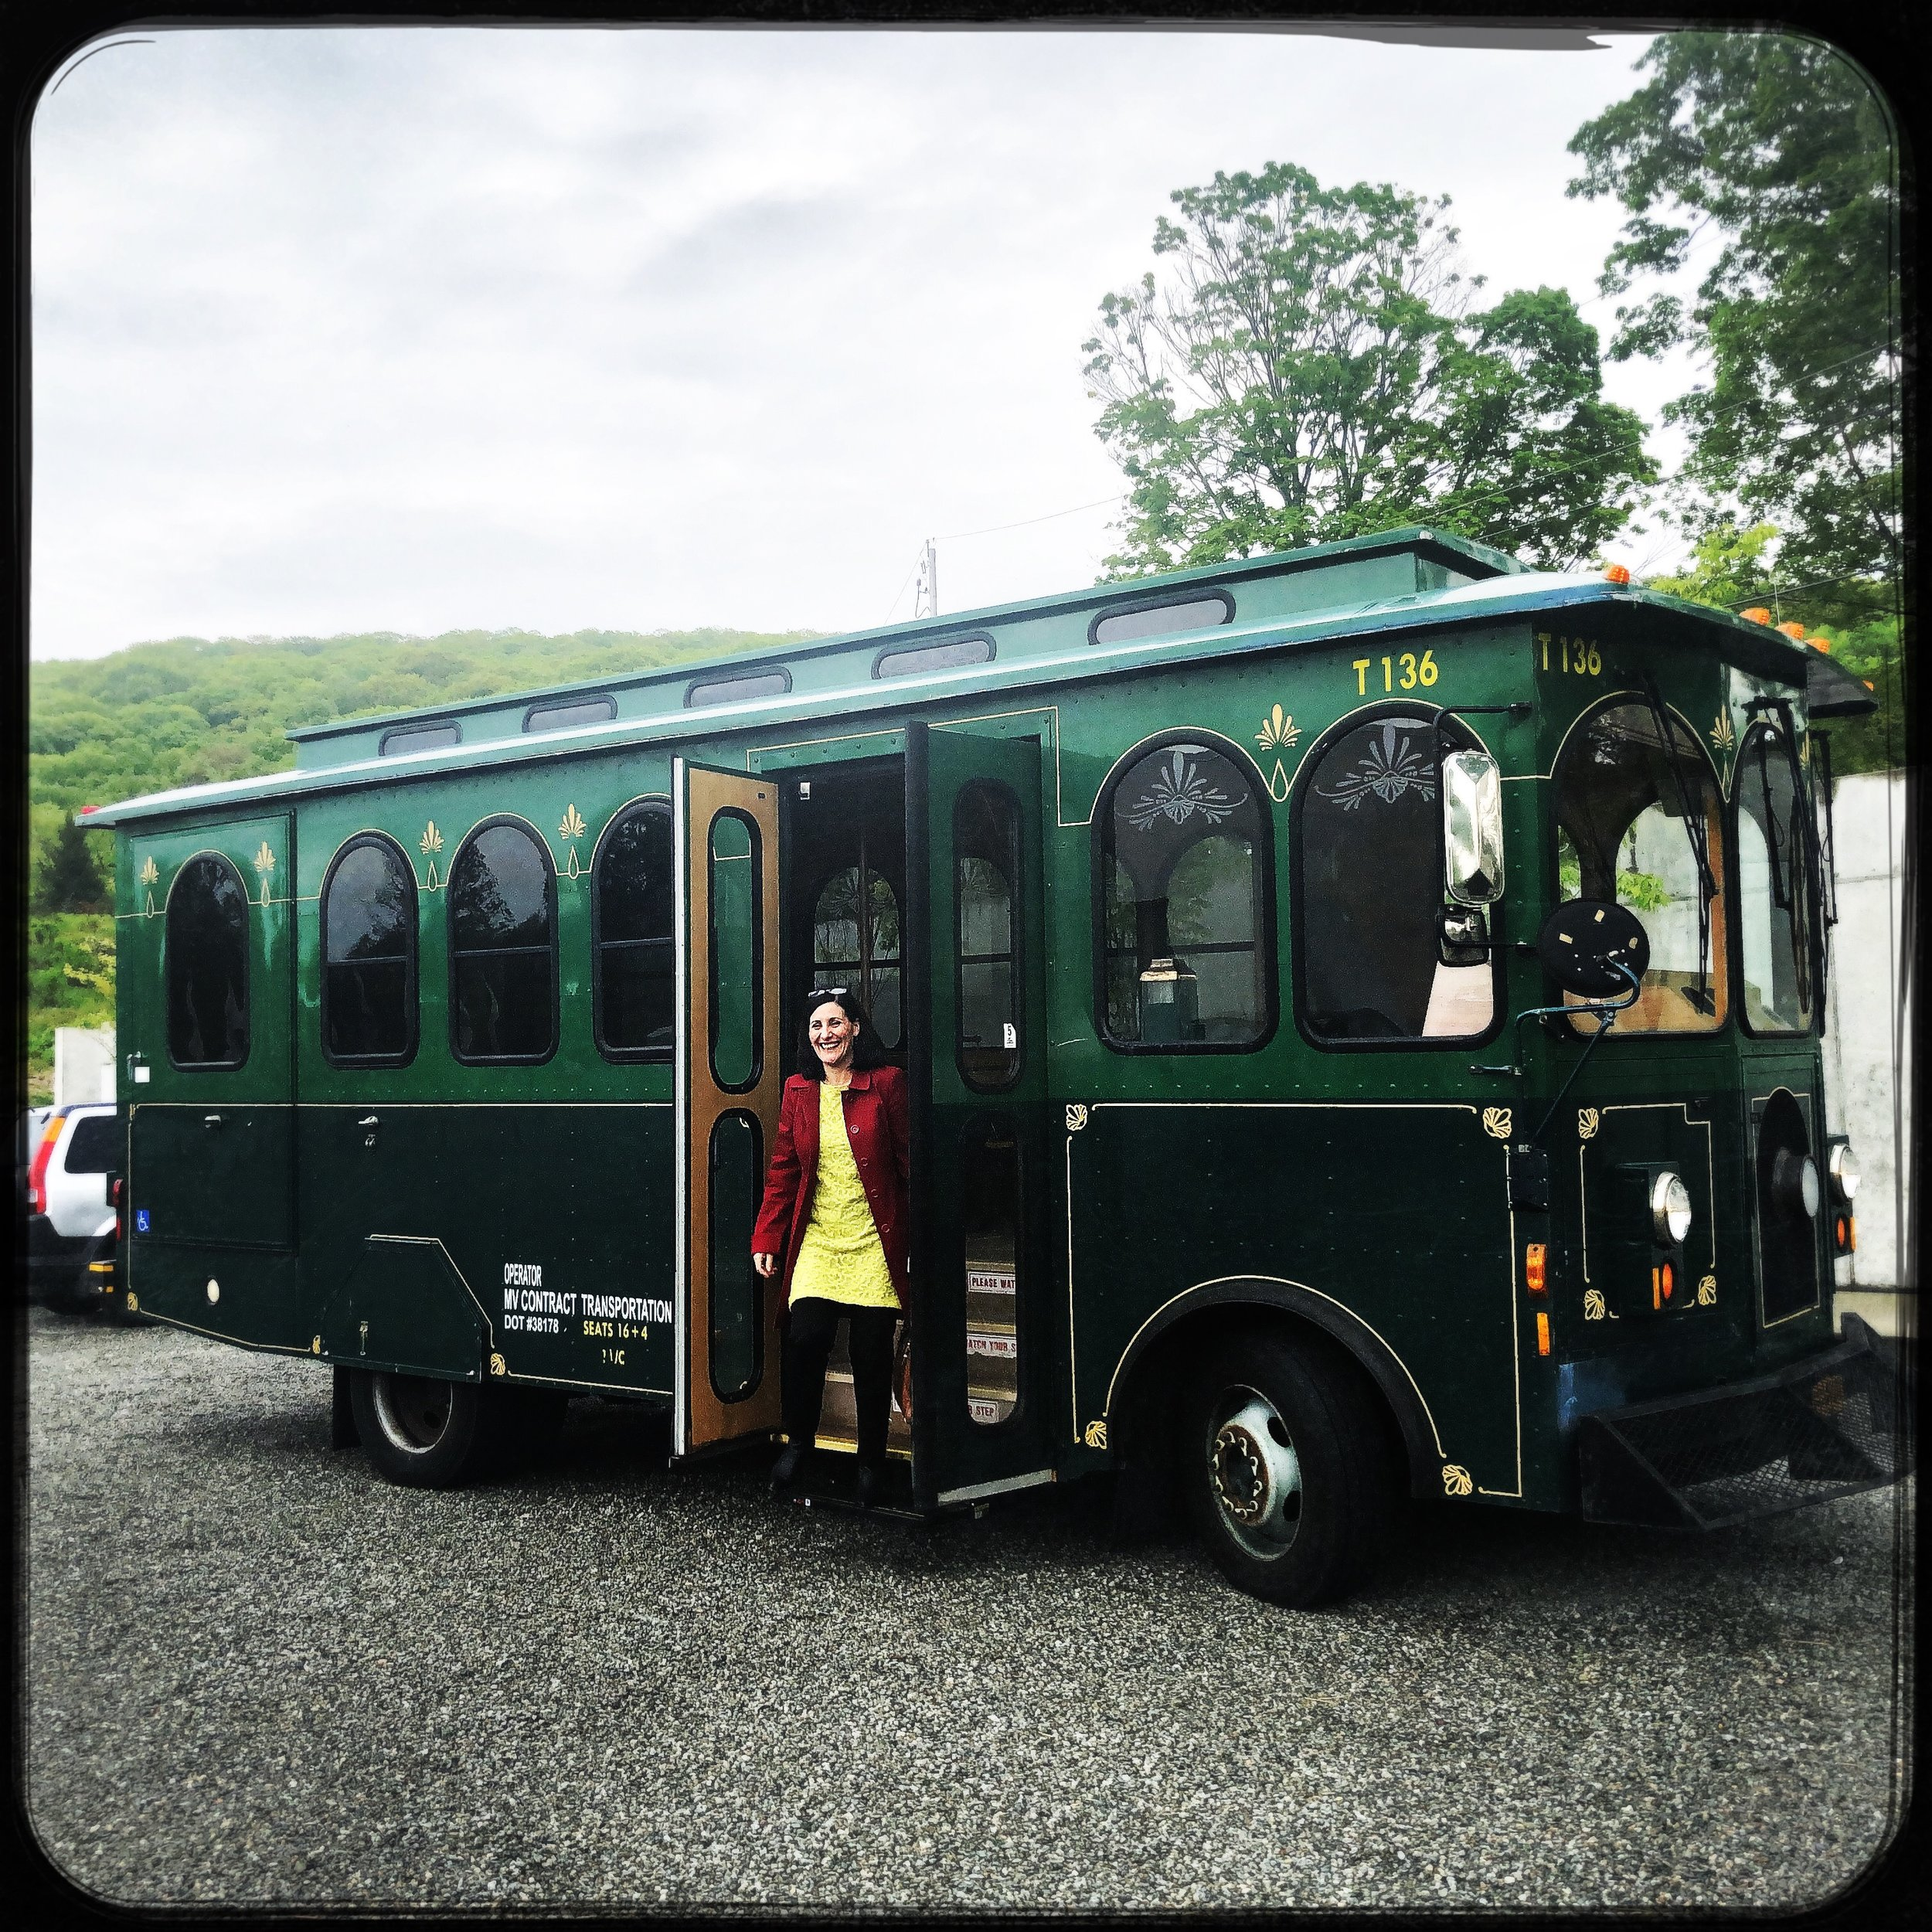 Here comes the Cold Spring Trolley - Taking Visitors to and from museums, hikes, and Cold Spring and Beacon Main Streets for fun, day-trip adventures.